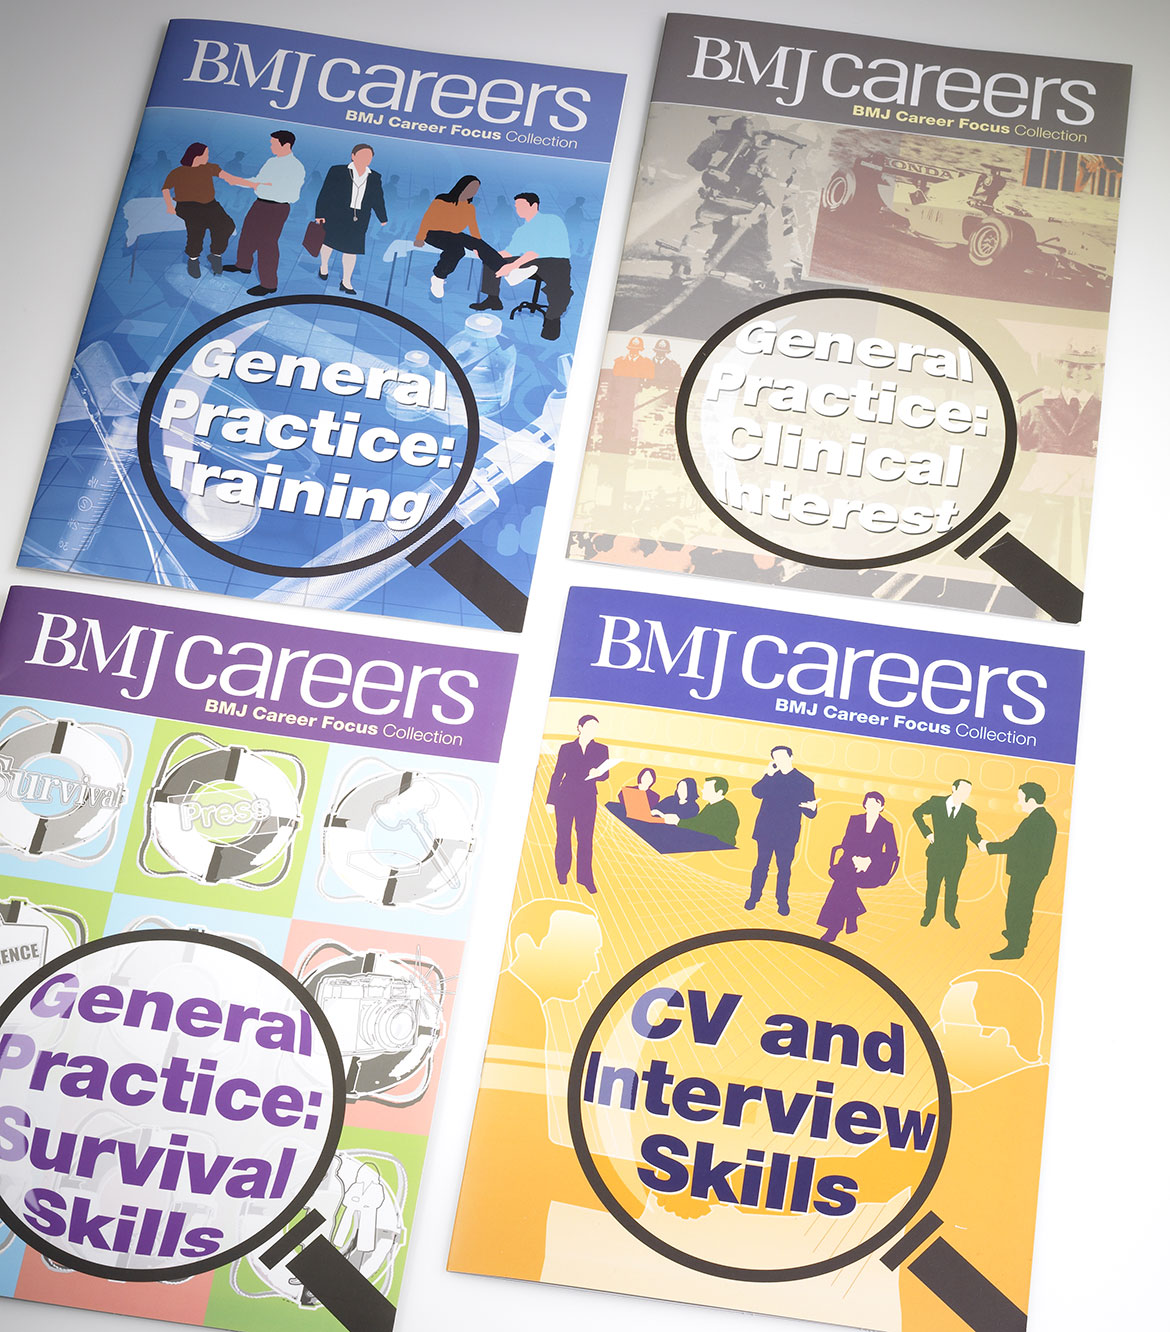 BMJ Career Focus Magazines